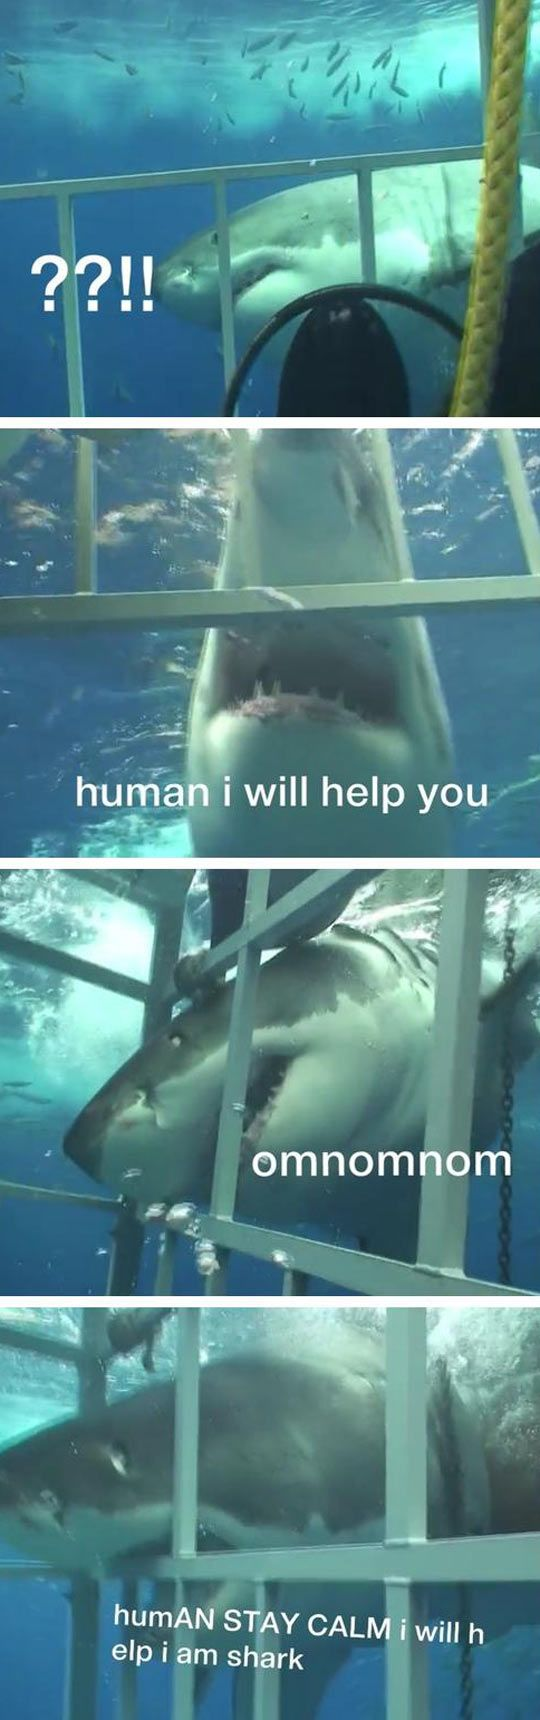 No thanks, shark, you're a pal and all, but really I'll be okay...